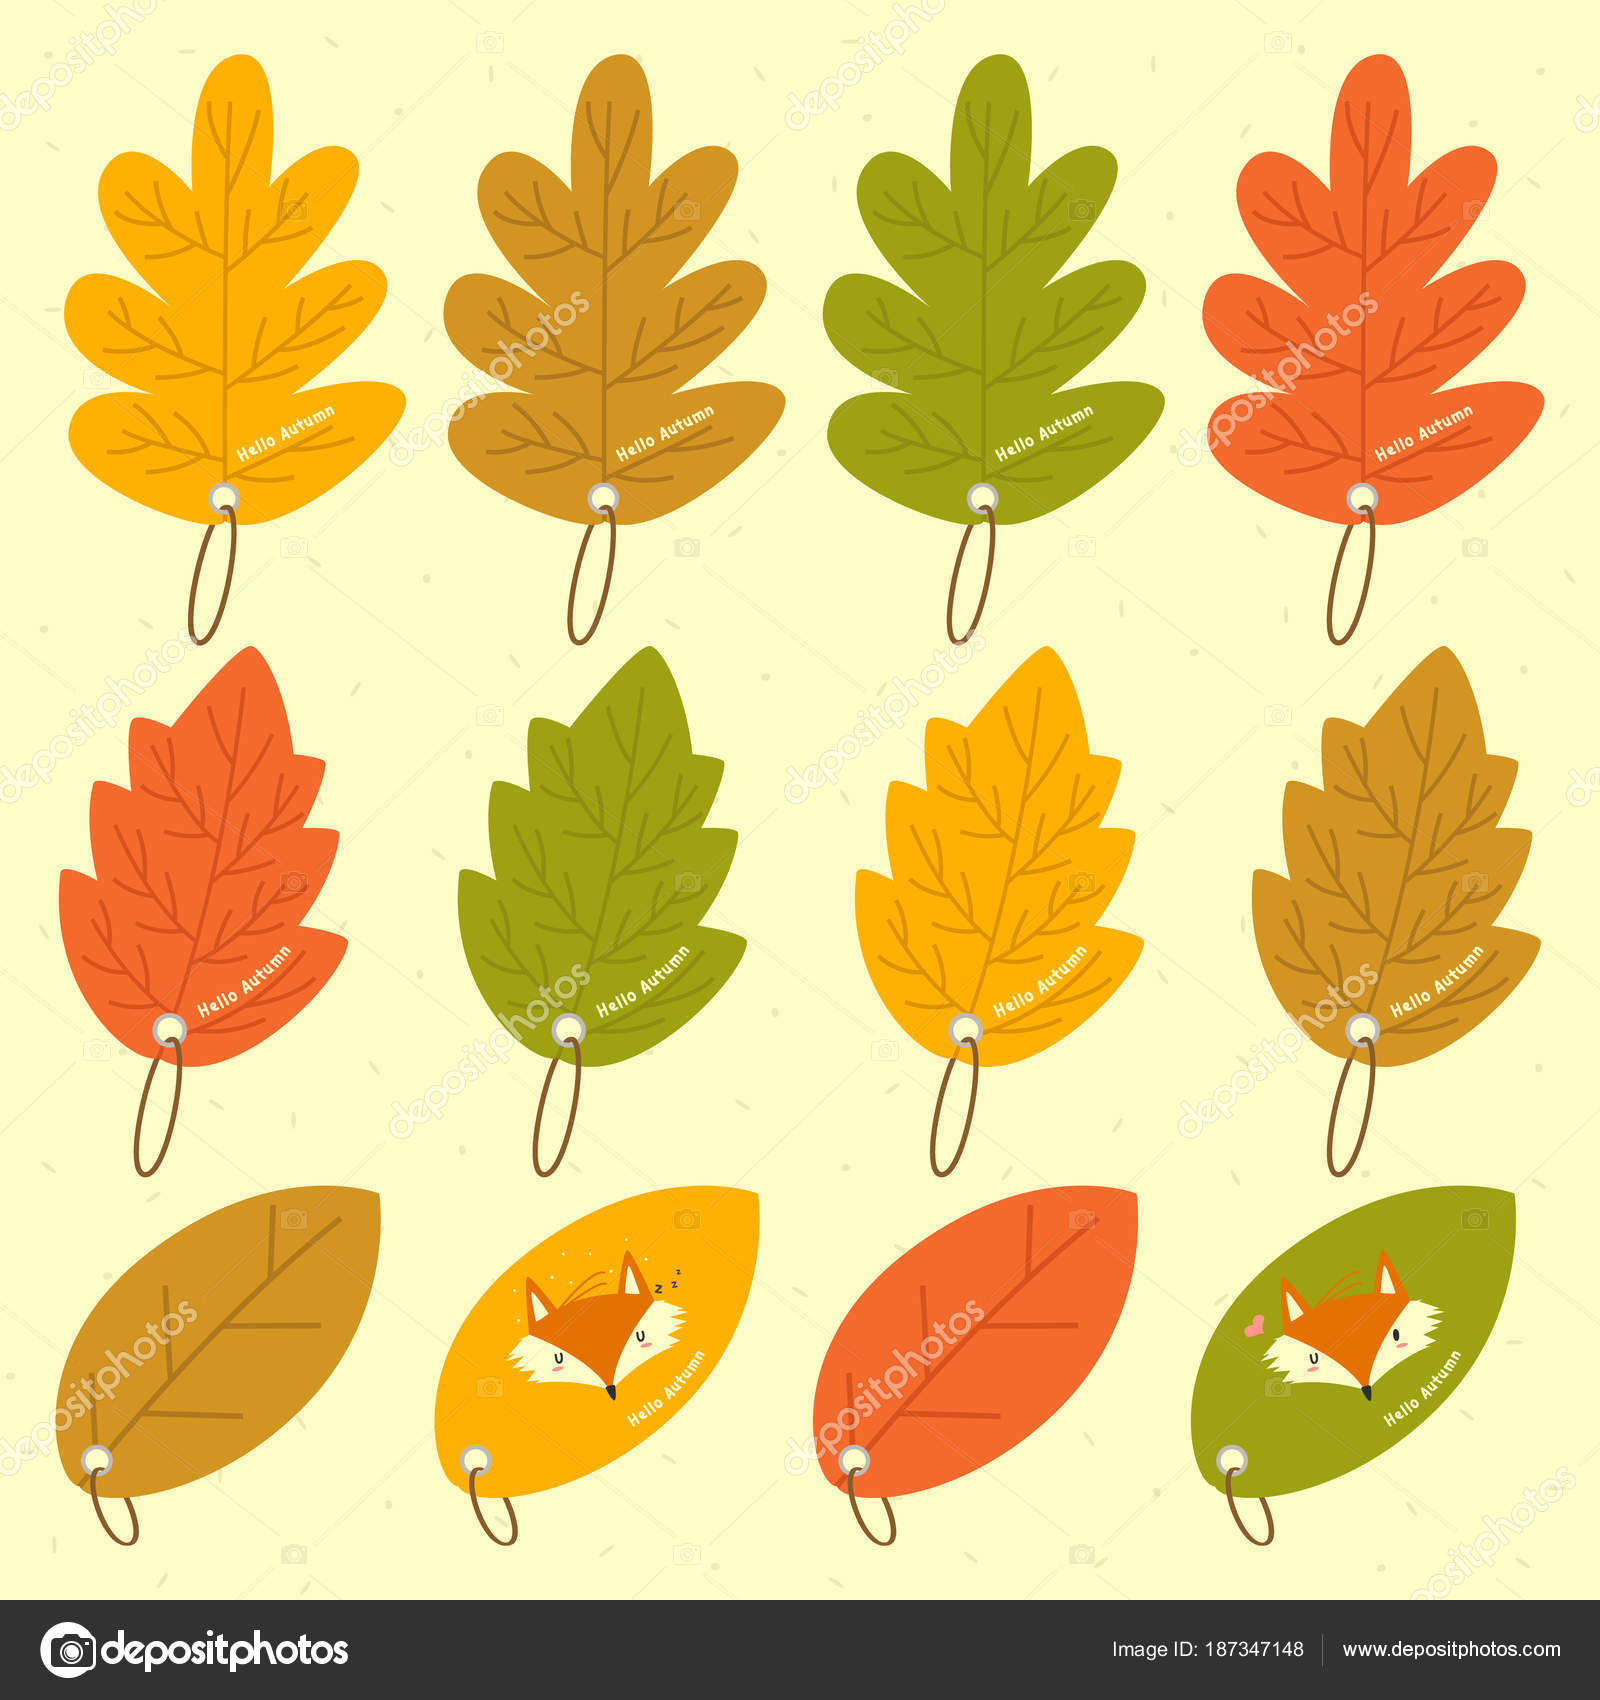 photo regarding Leaf Shapes Printable named Autumn Leaves Substitute Designs Bookmark Template Vector